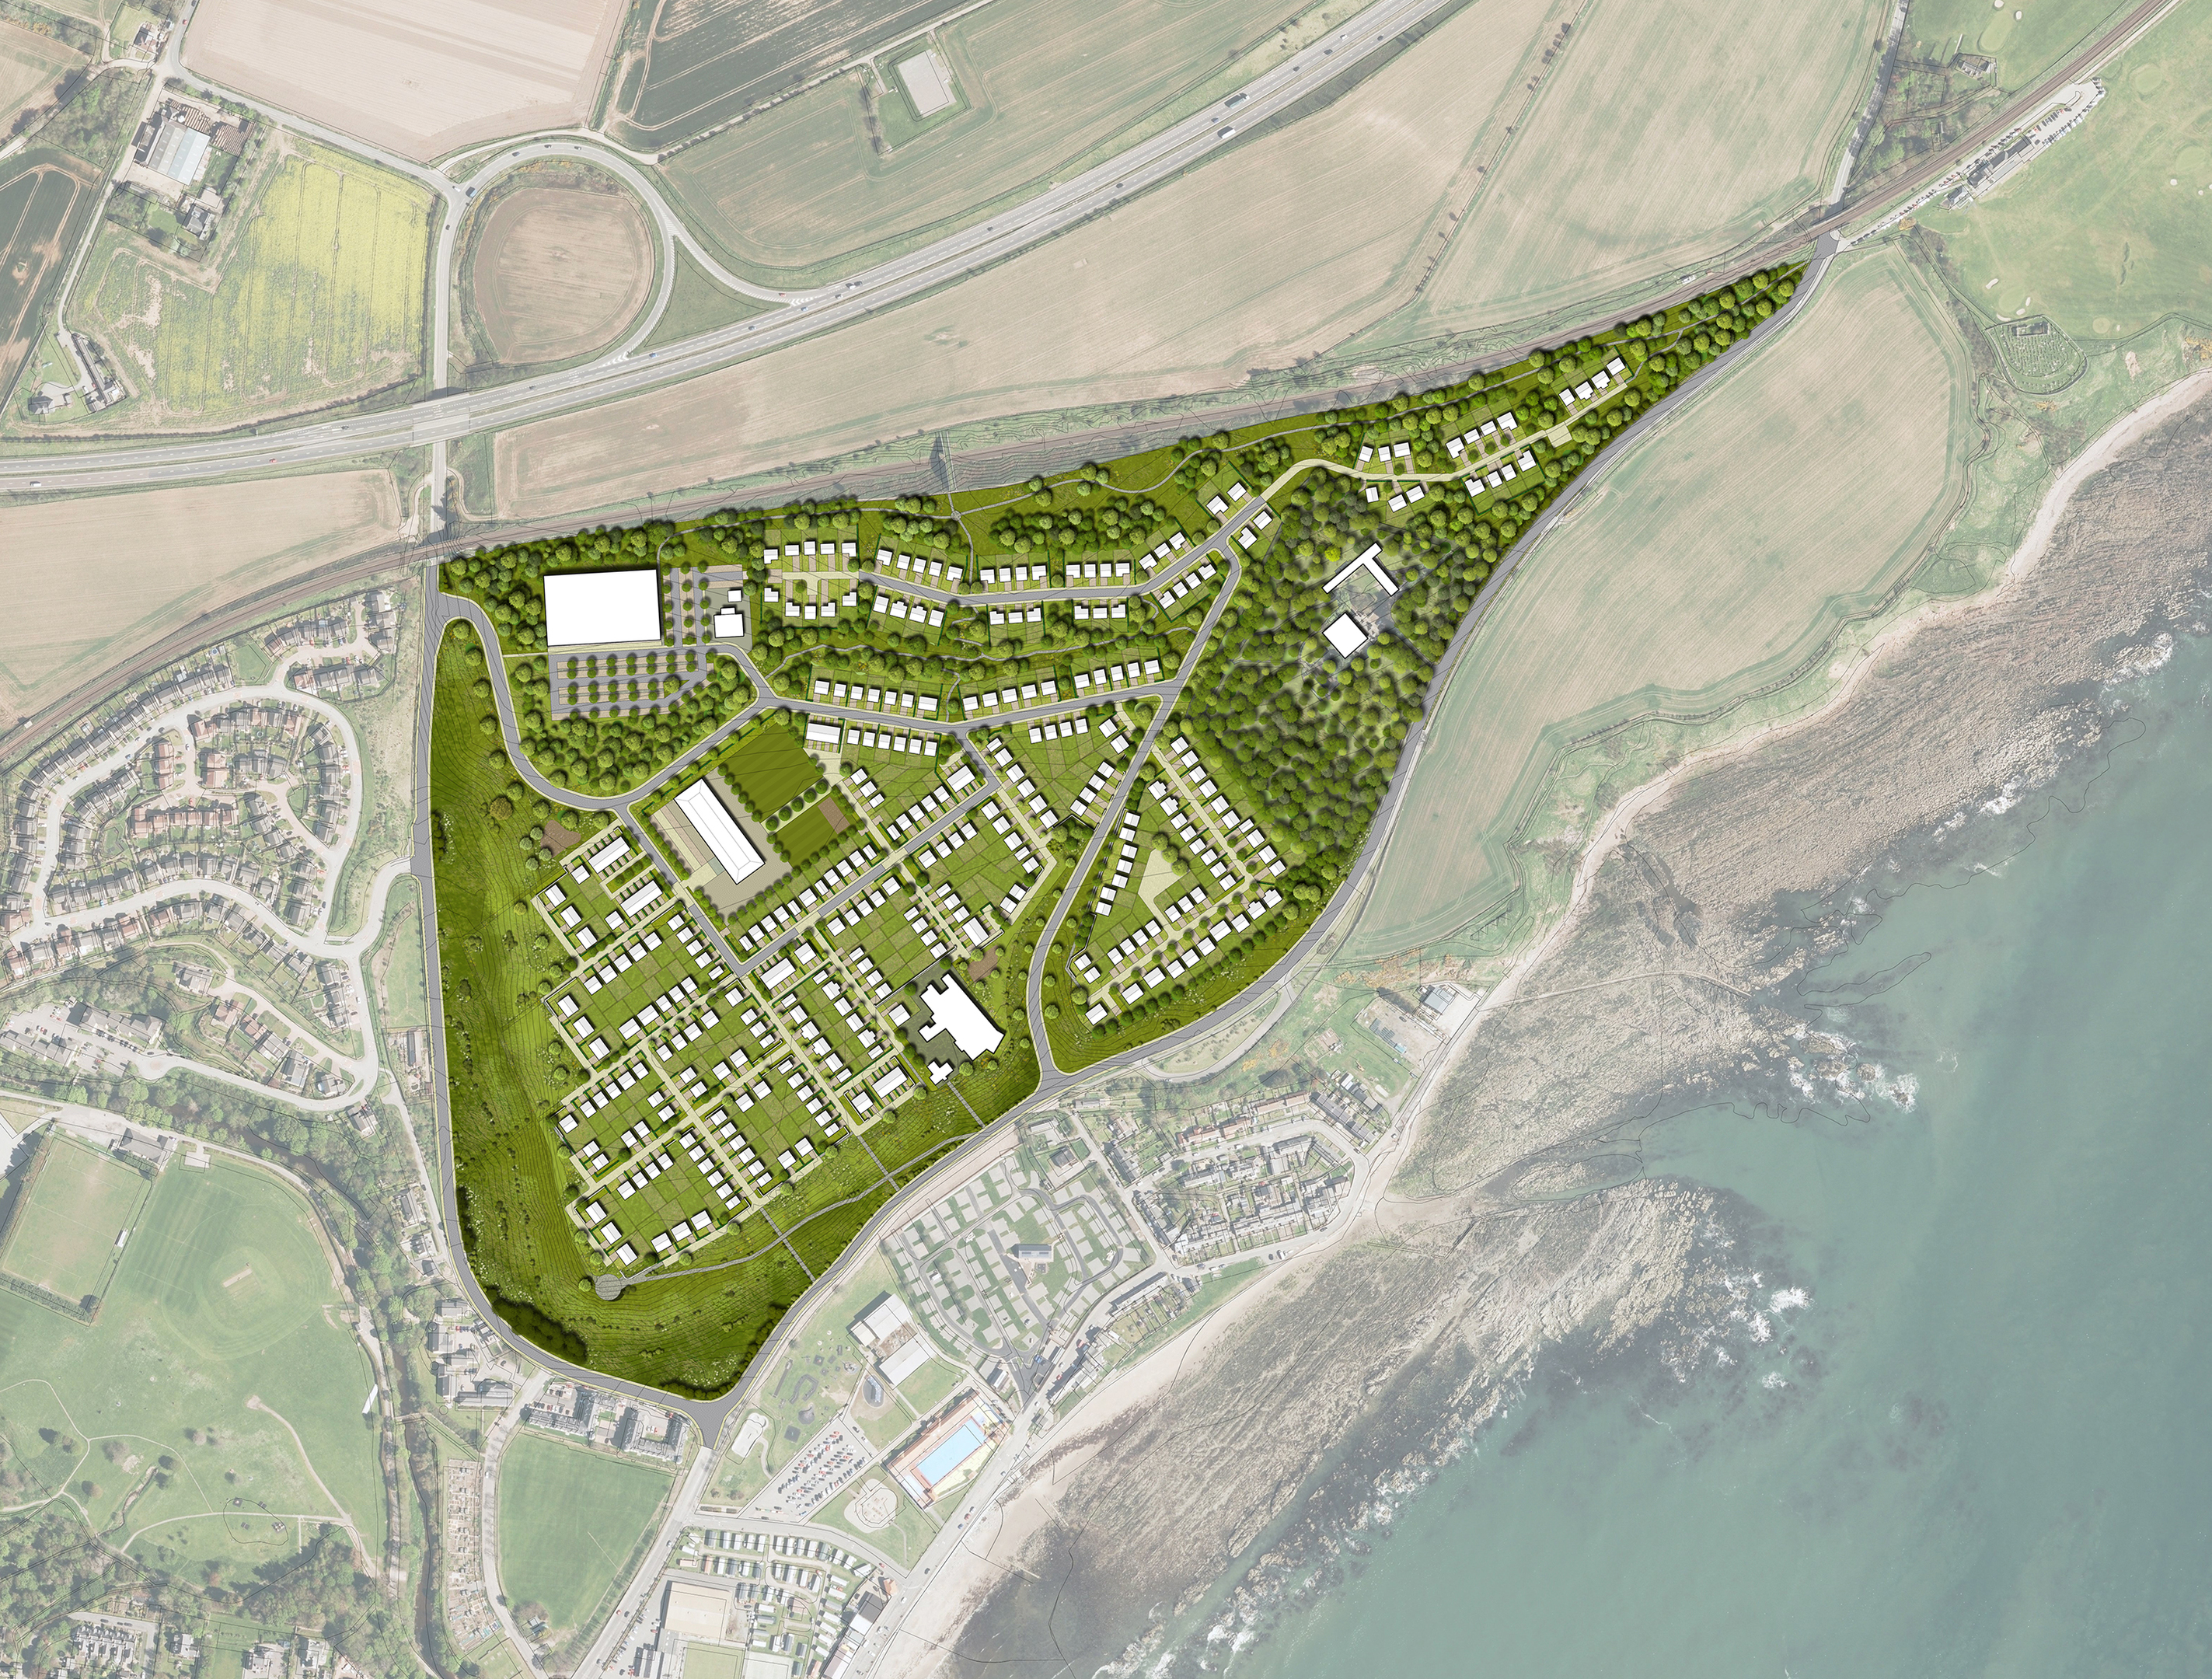 Stewart Milne Homes want to build 400 homes, a supermarket, petrol station and community facilities at Mains of Cowie, Stonehaven